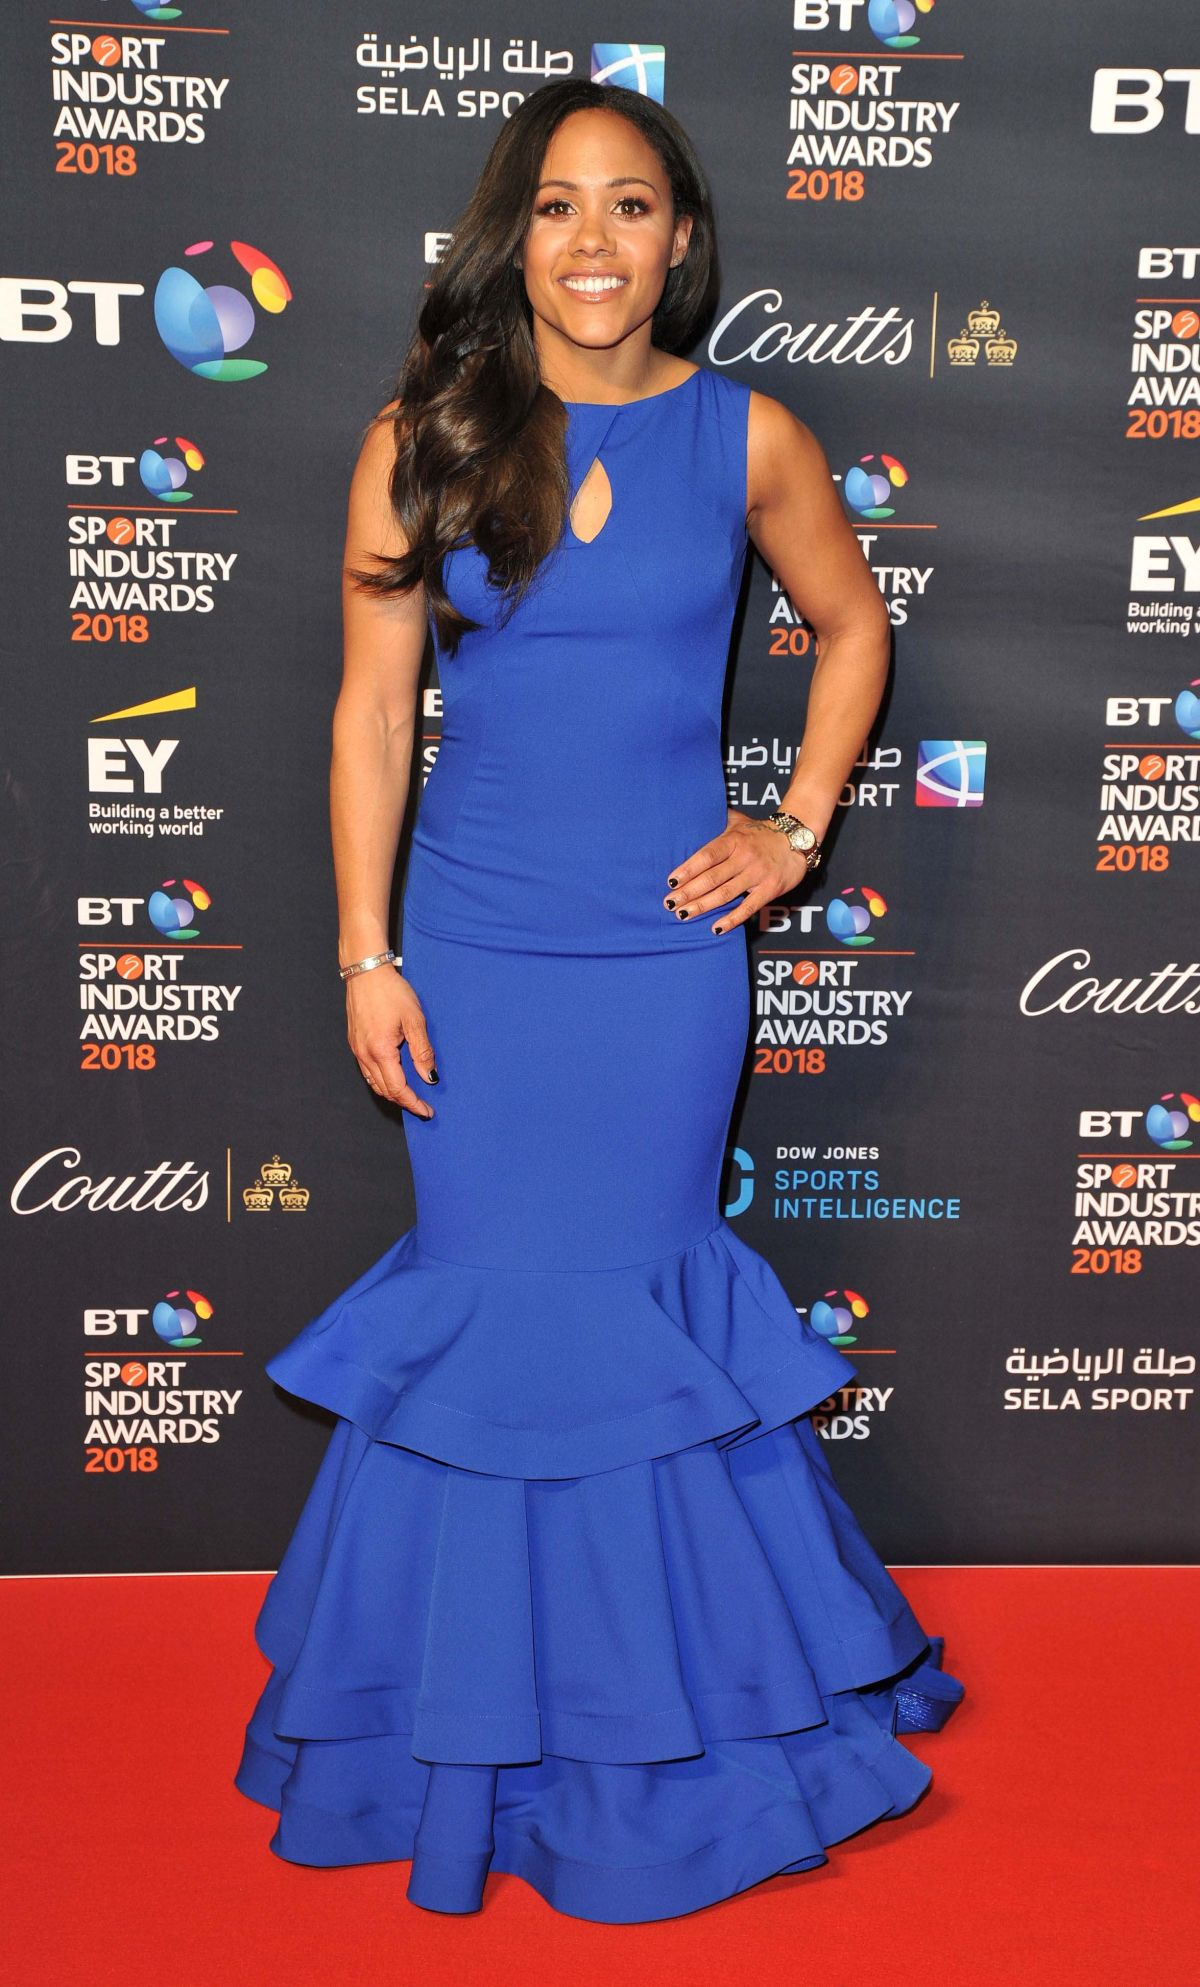 ¿Cuánto mide Alex Scott? - Real height Alex-scott-at-bt-sport-industry-awards-in-london-04-26-2018-6